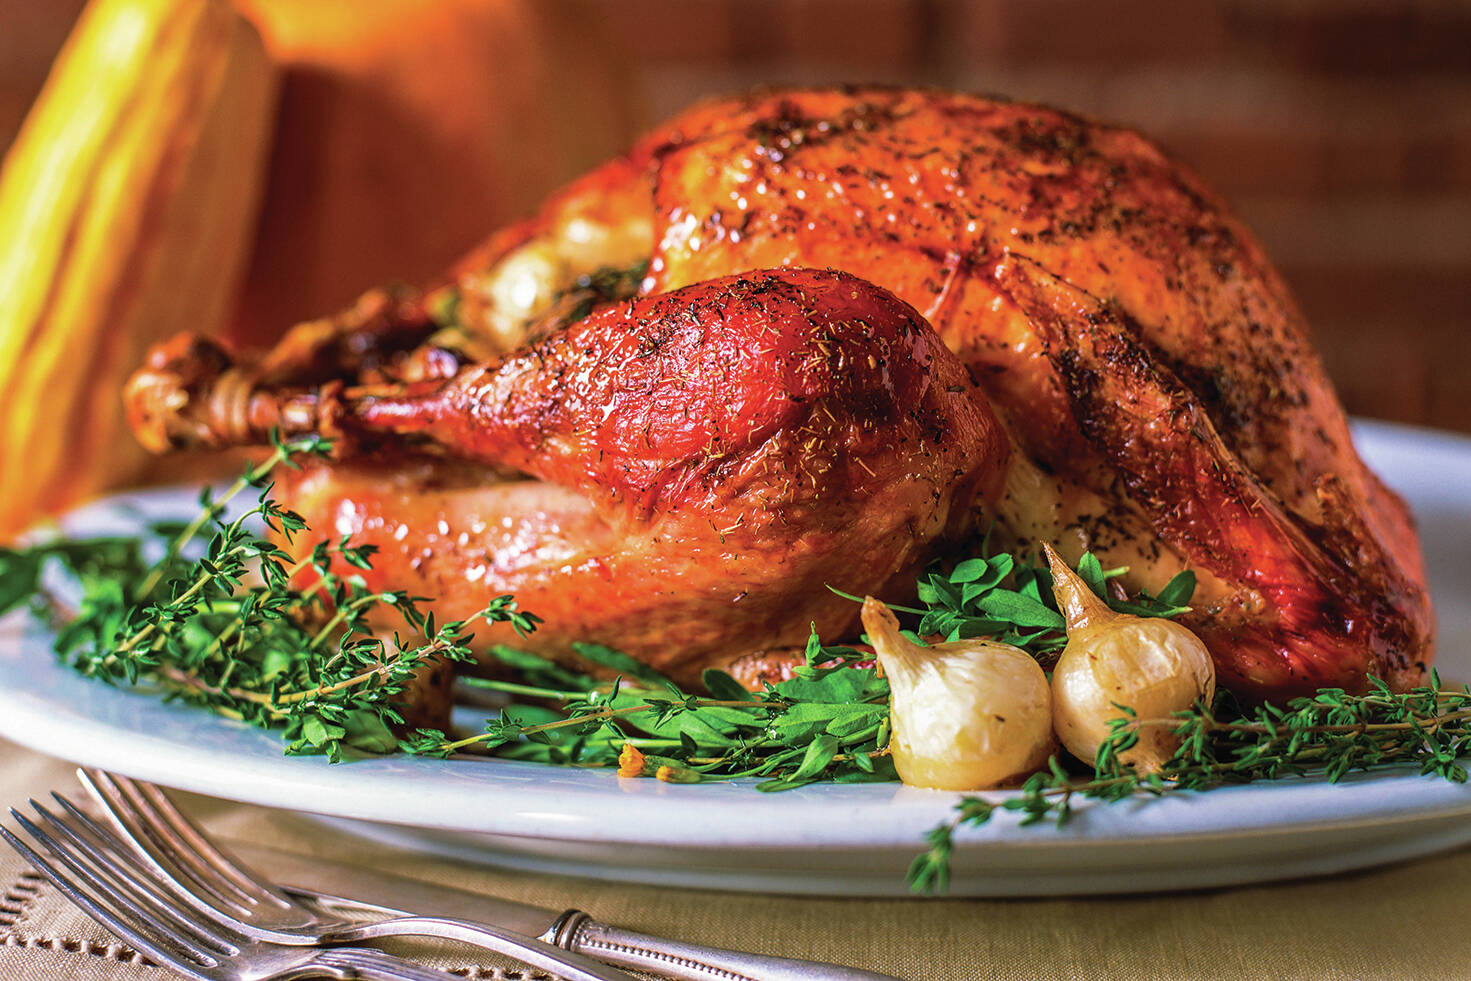 The turkey dinner is a traditional Thanksgiving meal in many households. (Special to Black Press Media)